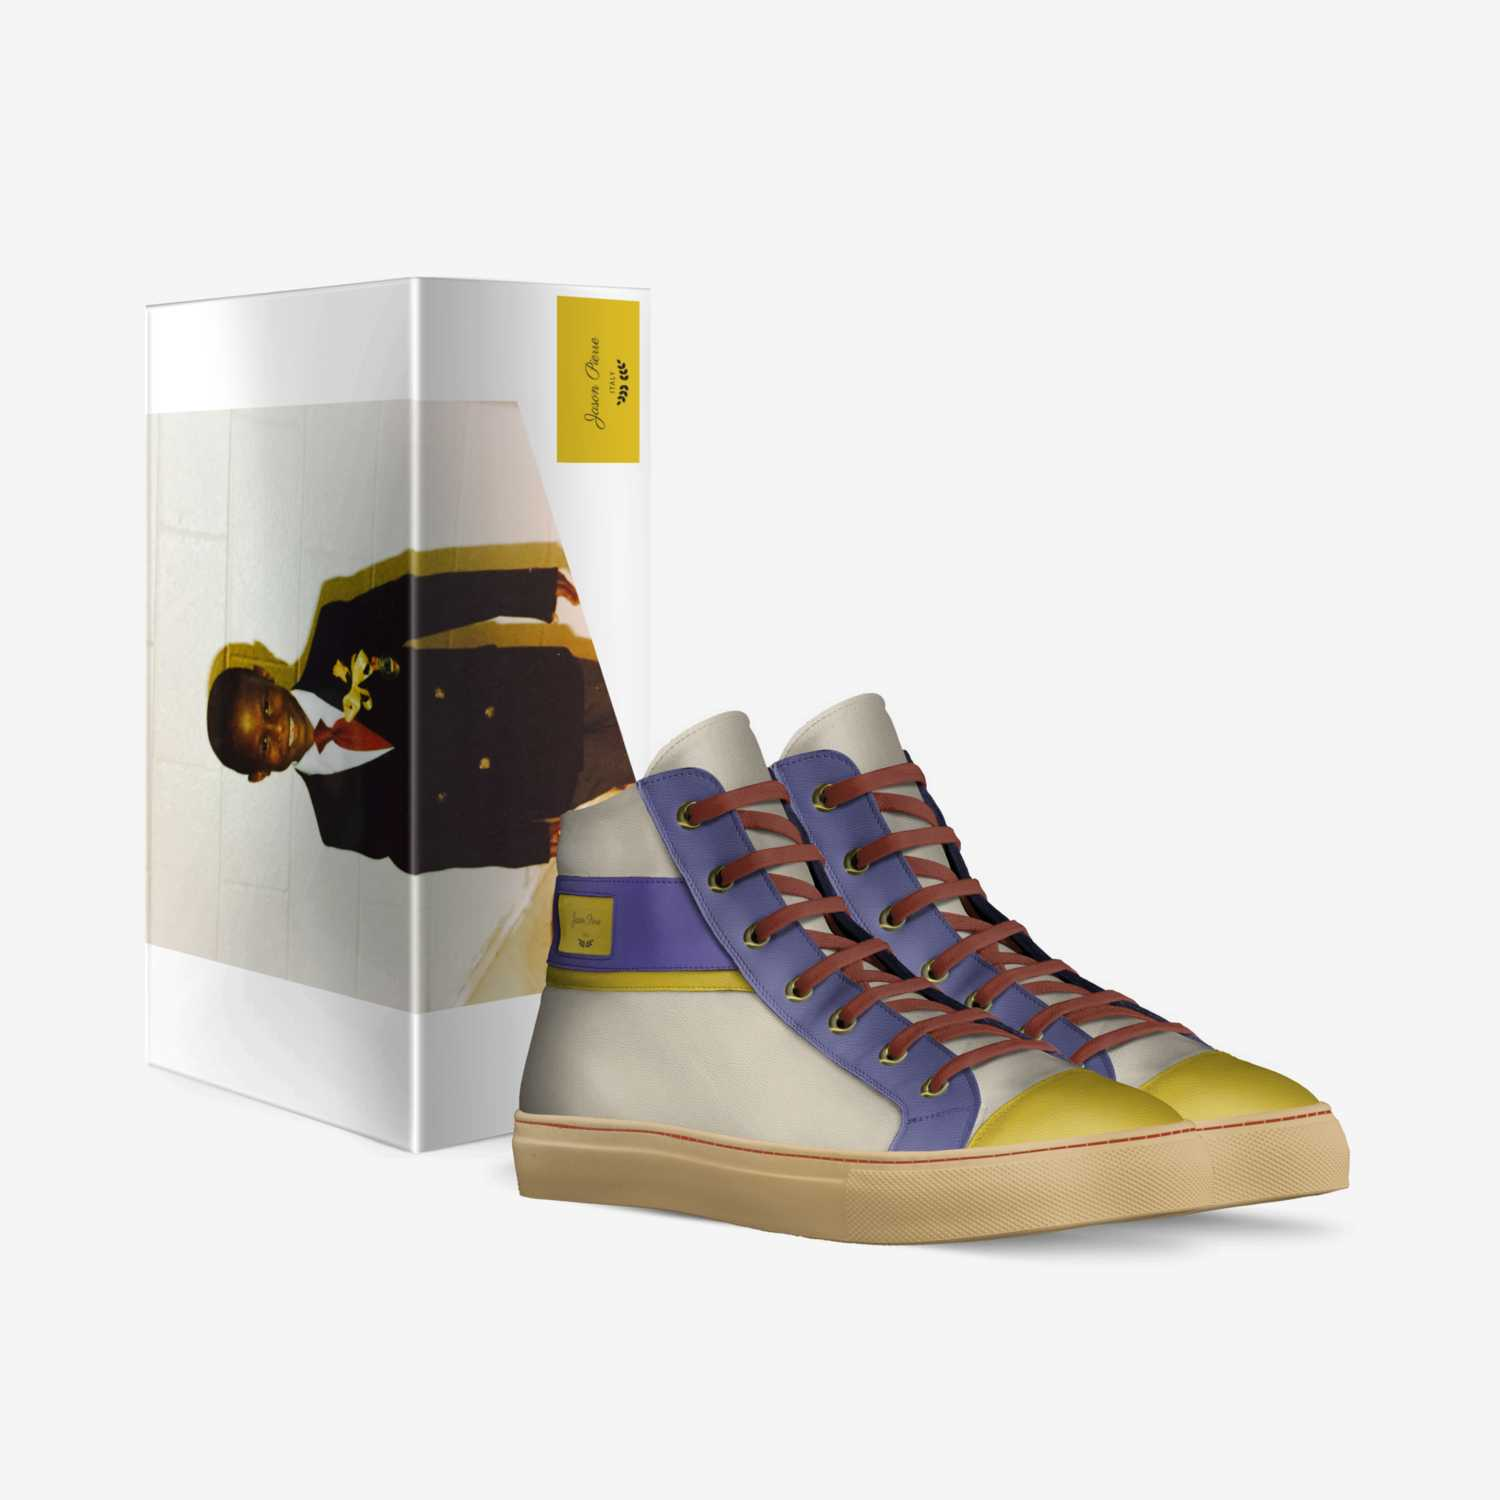 Jason Pierre custom made in Italy shoes by Jason Pierre   Box view